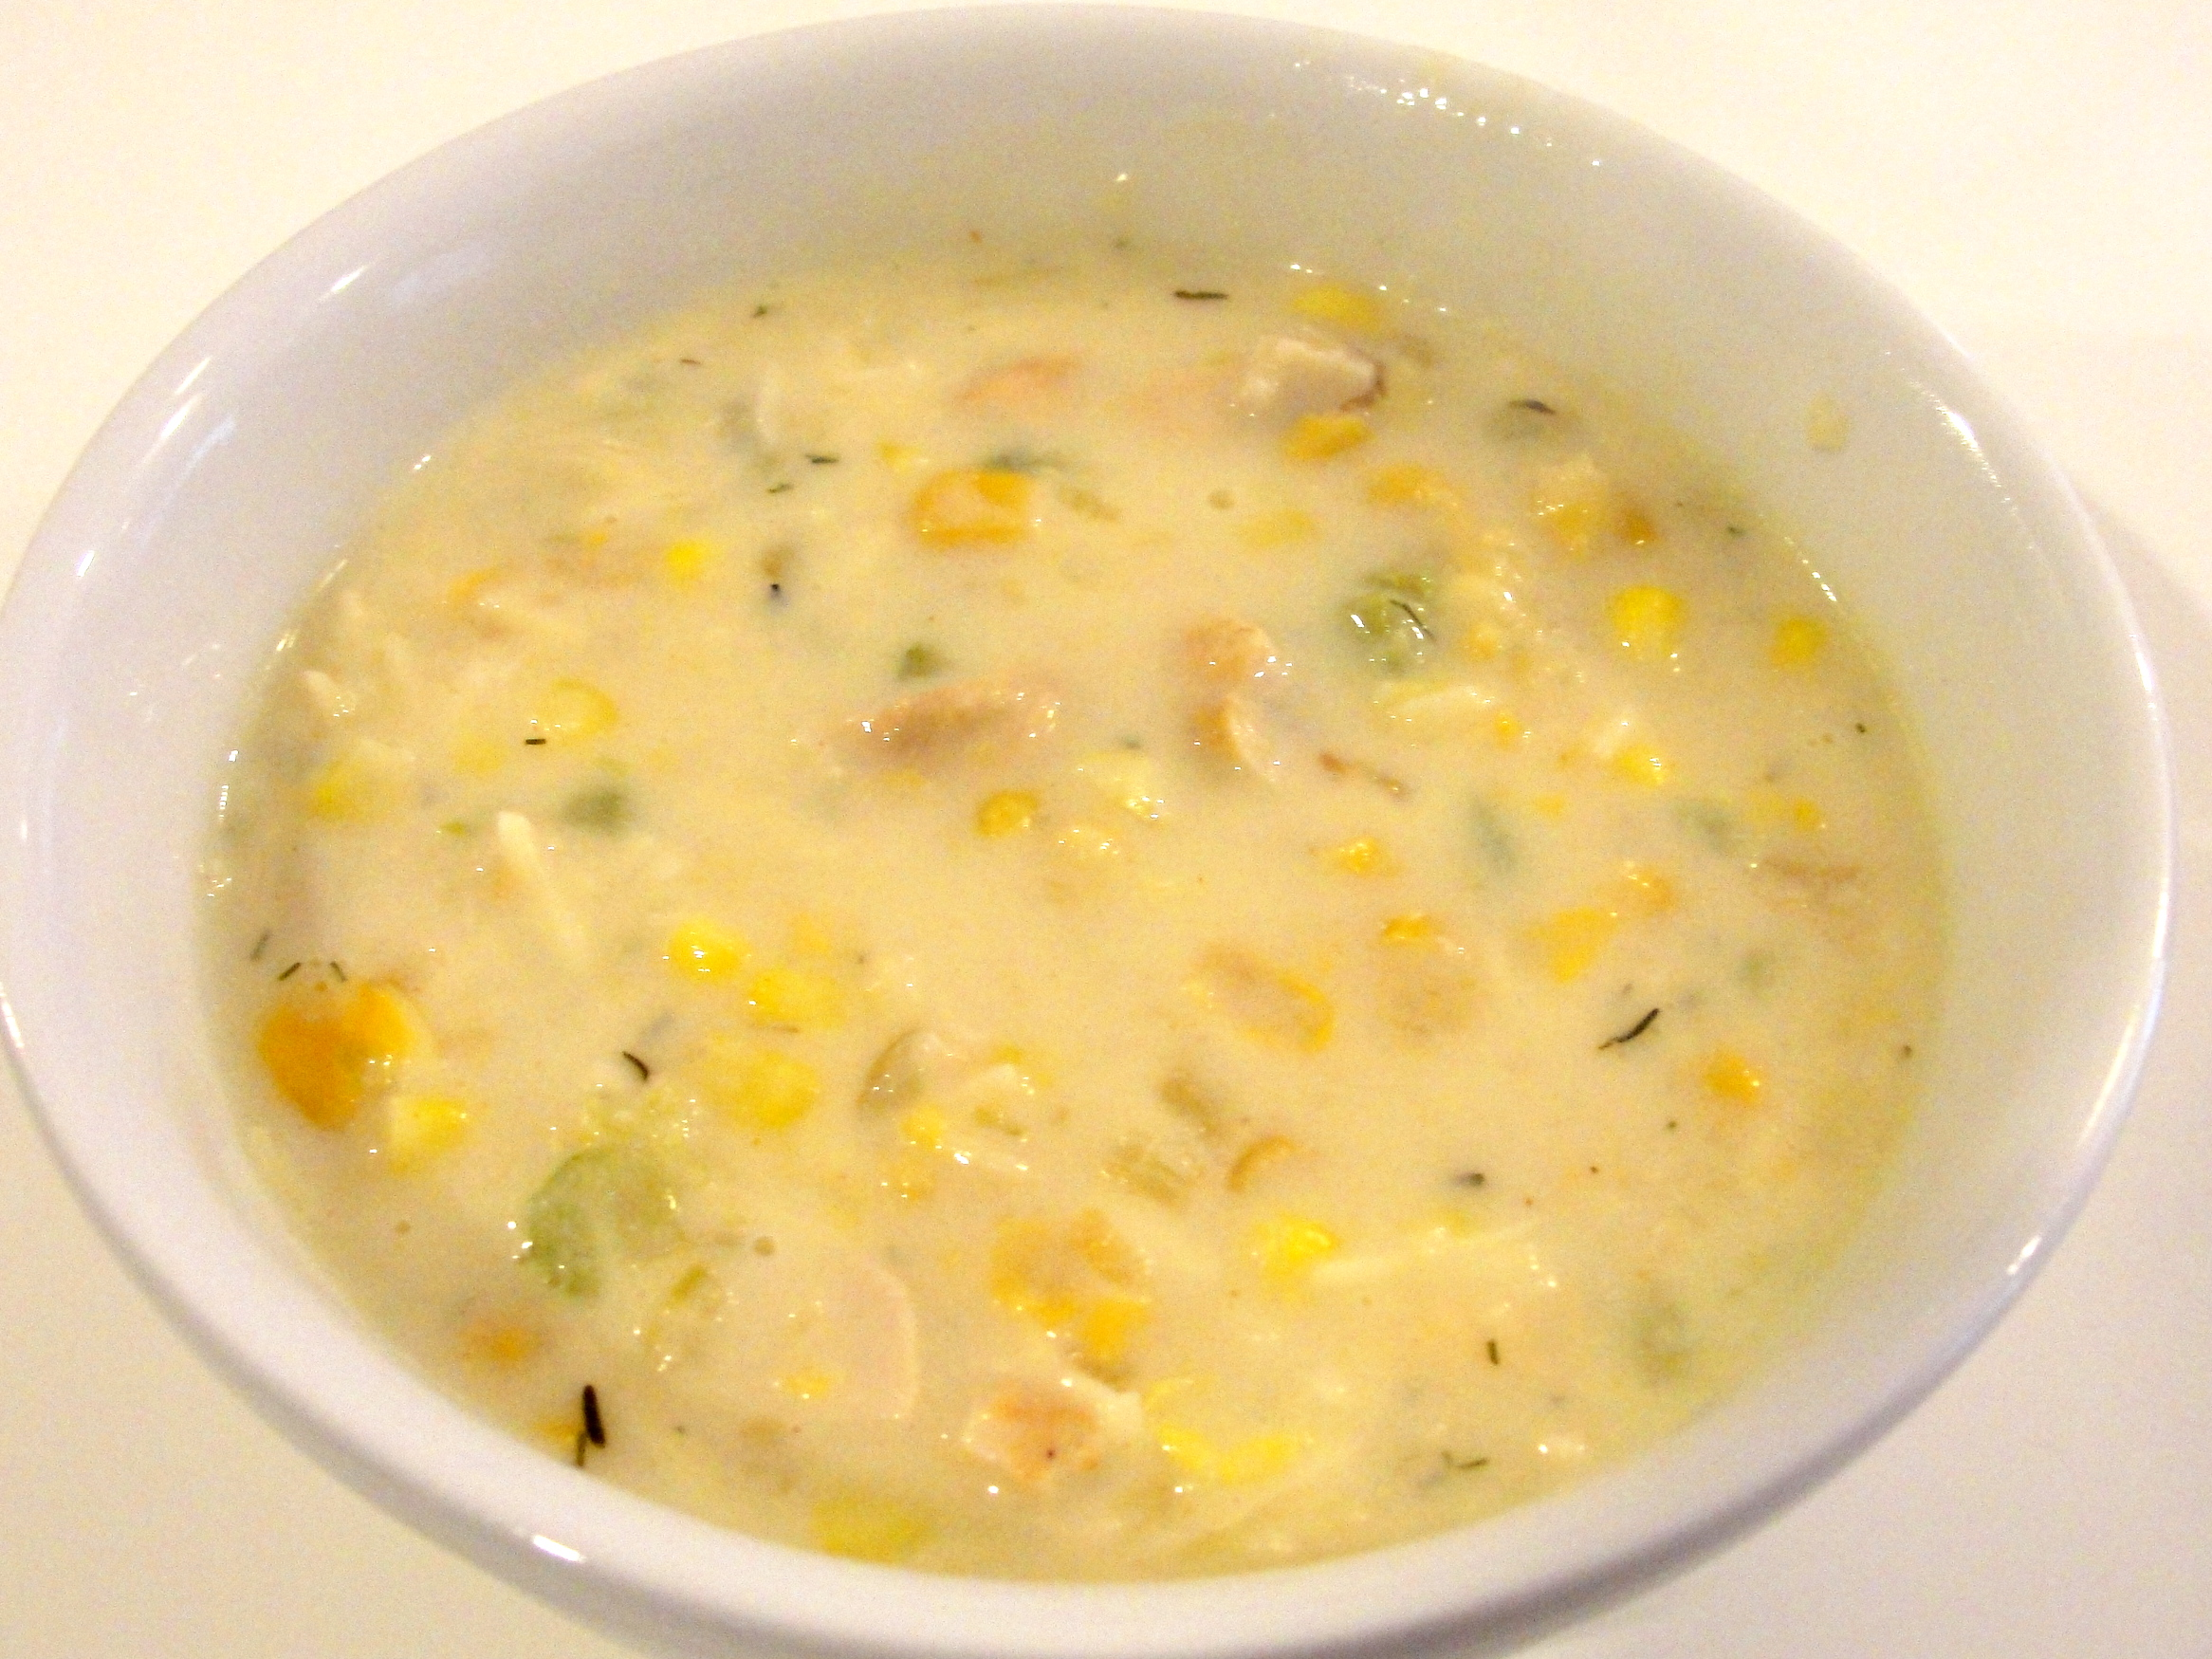 Crockpot corn chowder recipe ideas modern mom meals